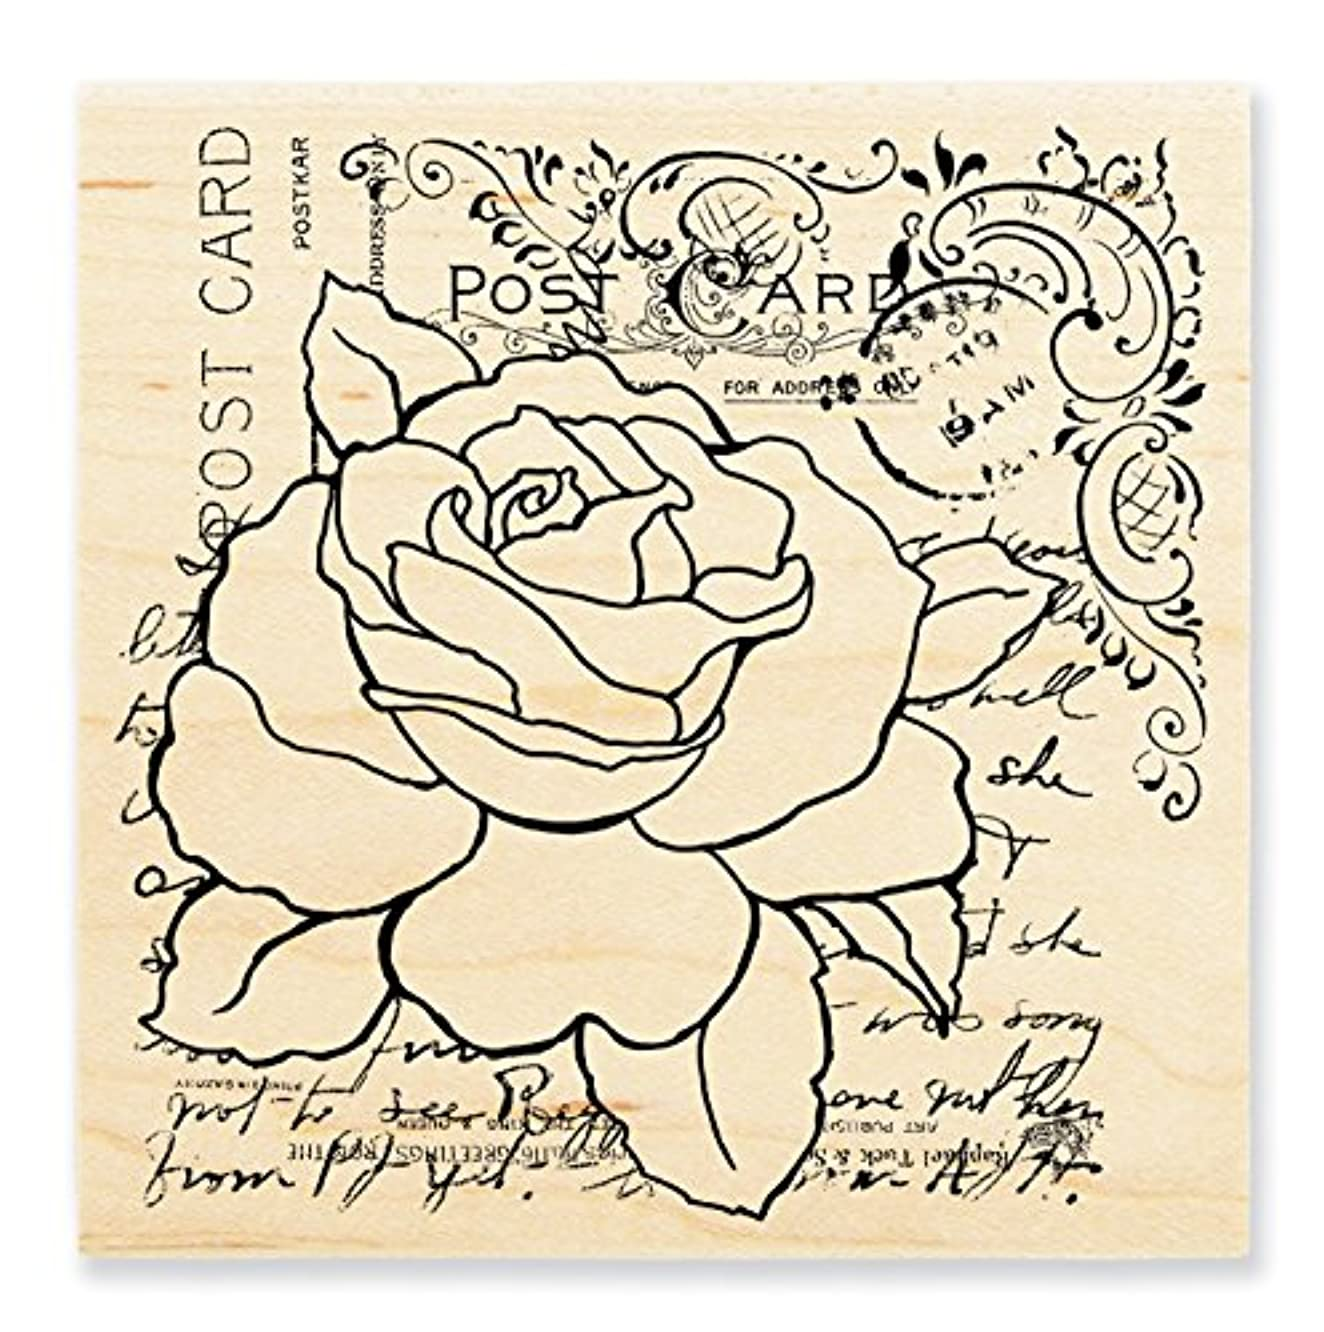 STAMPENDOUS Wood Rubber Stamp Rose Postcard